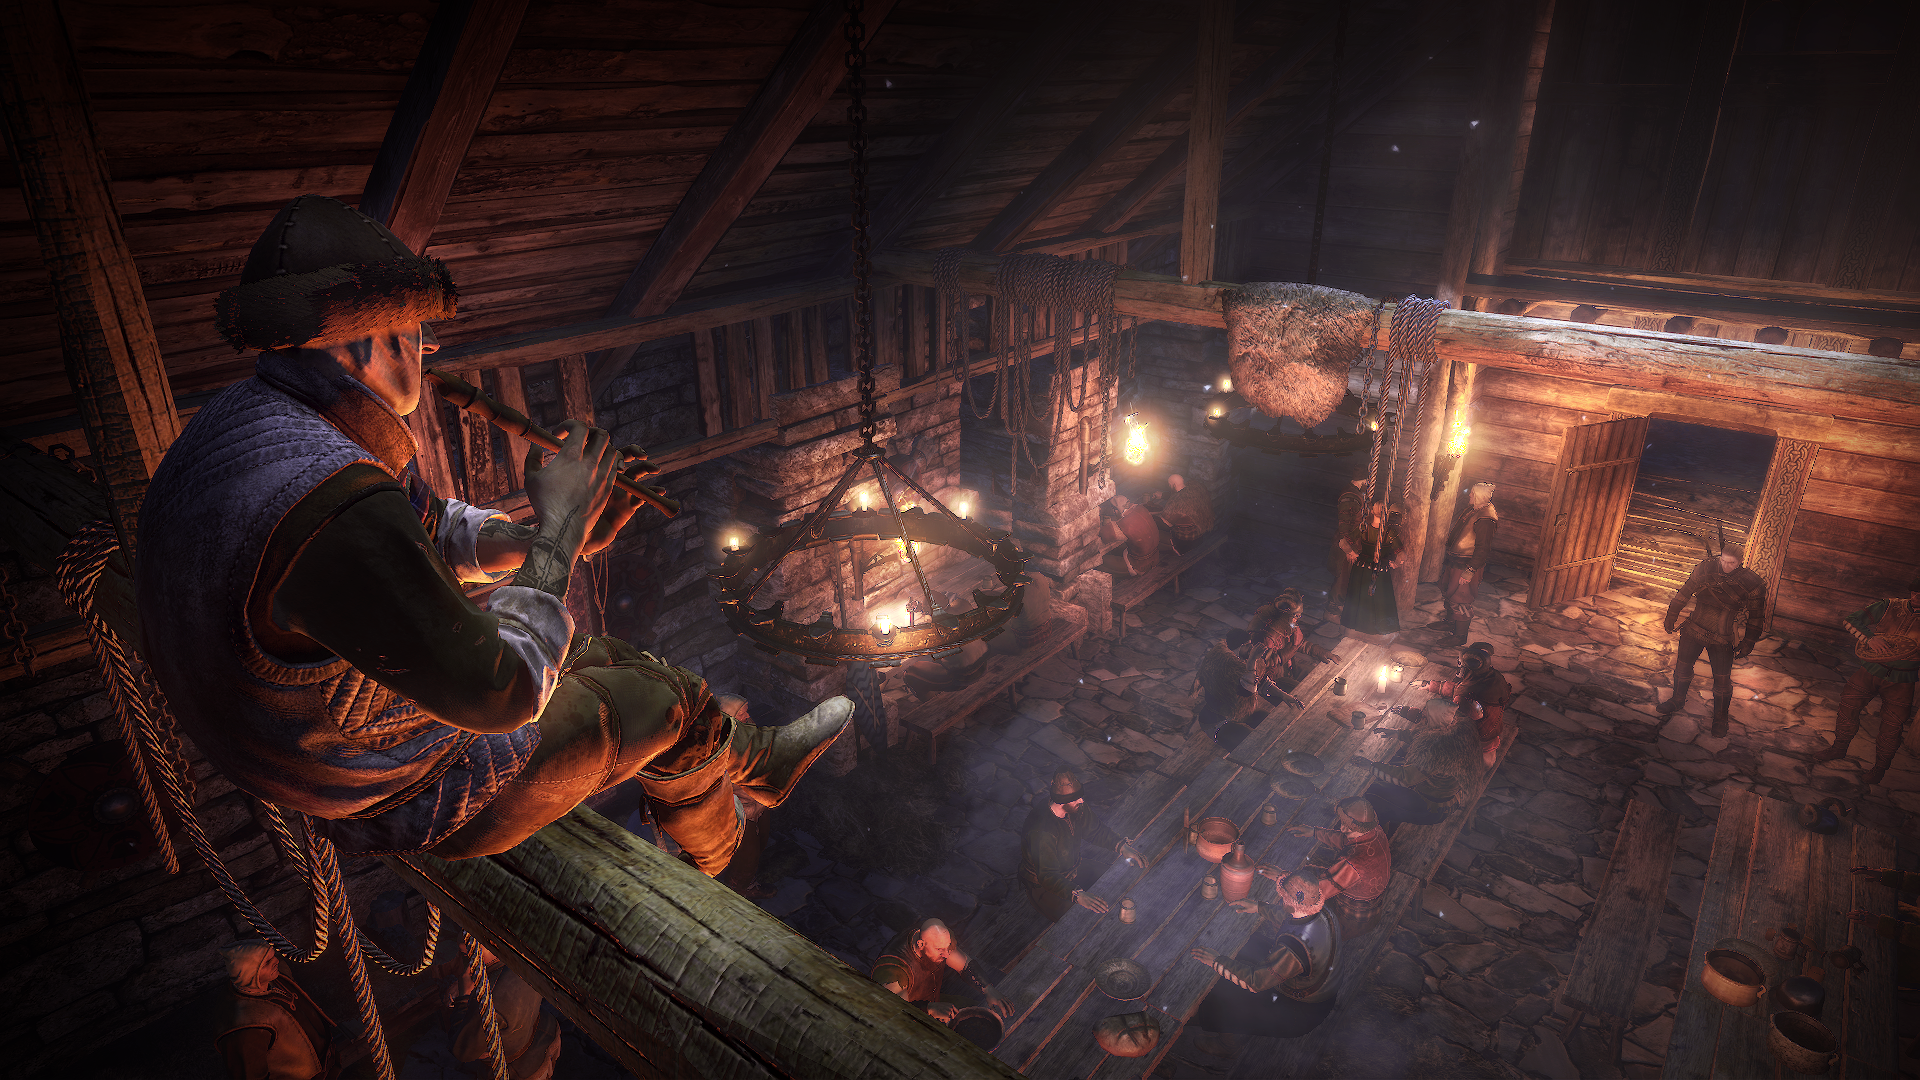 Screenshots The Witcher 3 Wiki Guide Ign The Witcher 3 The Witcher Wild Hunt